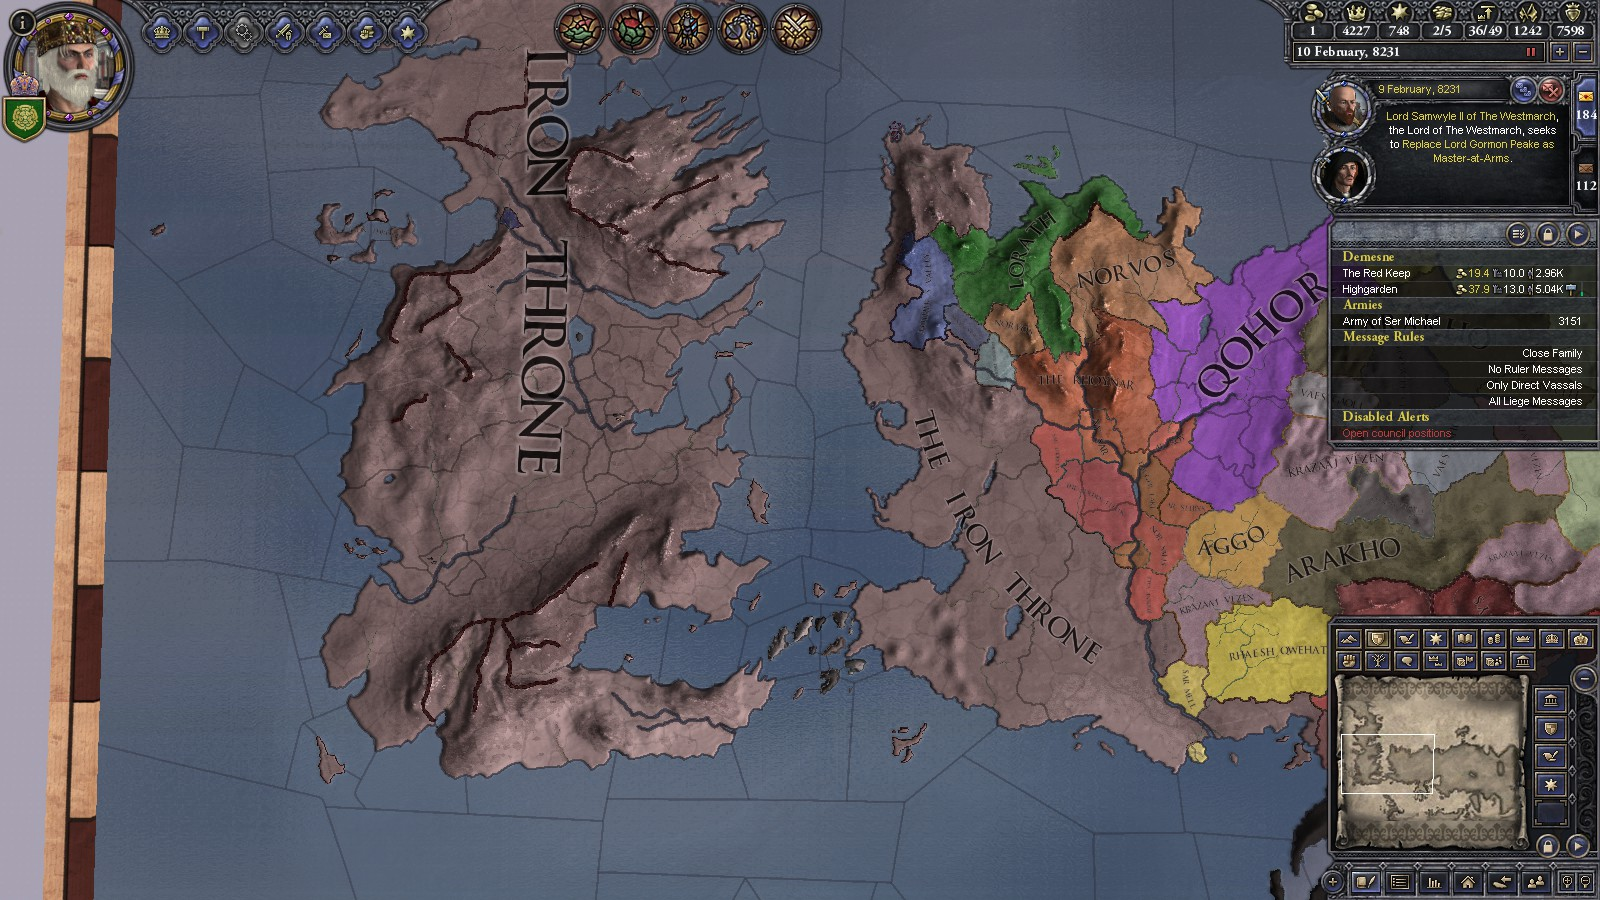 Crusader Kings II A Game of Thrones mod stories - Entertainment - A